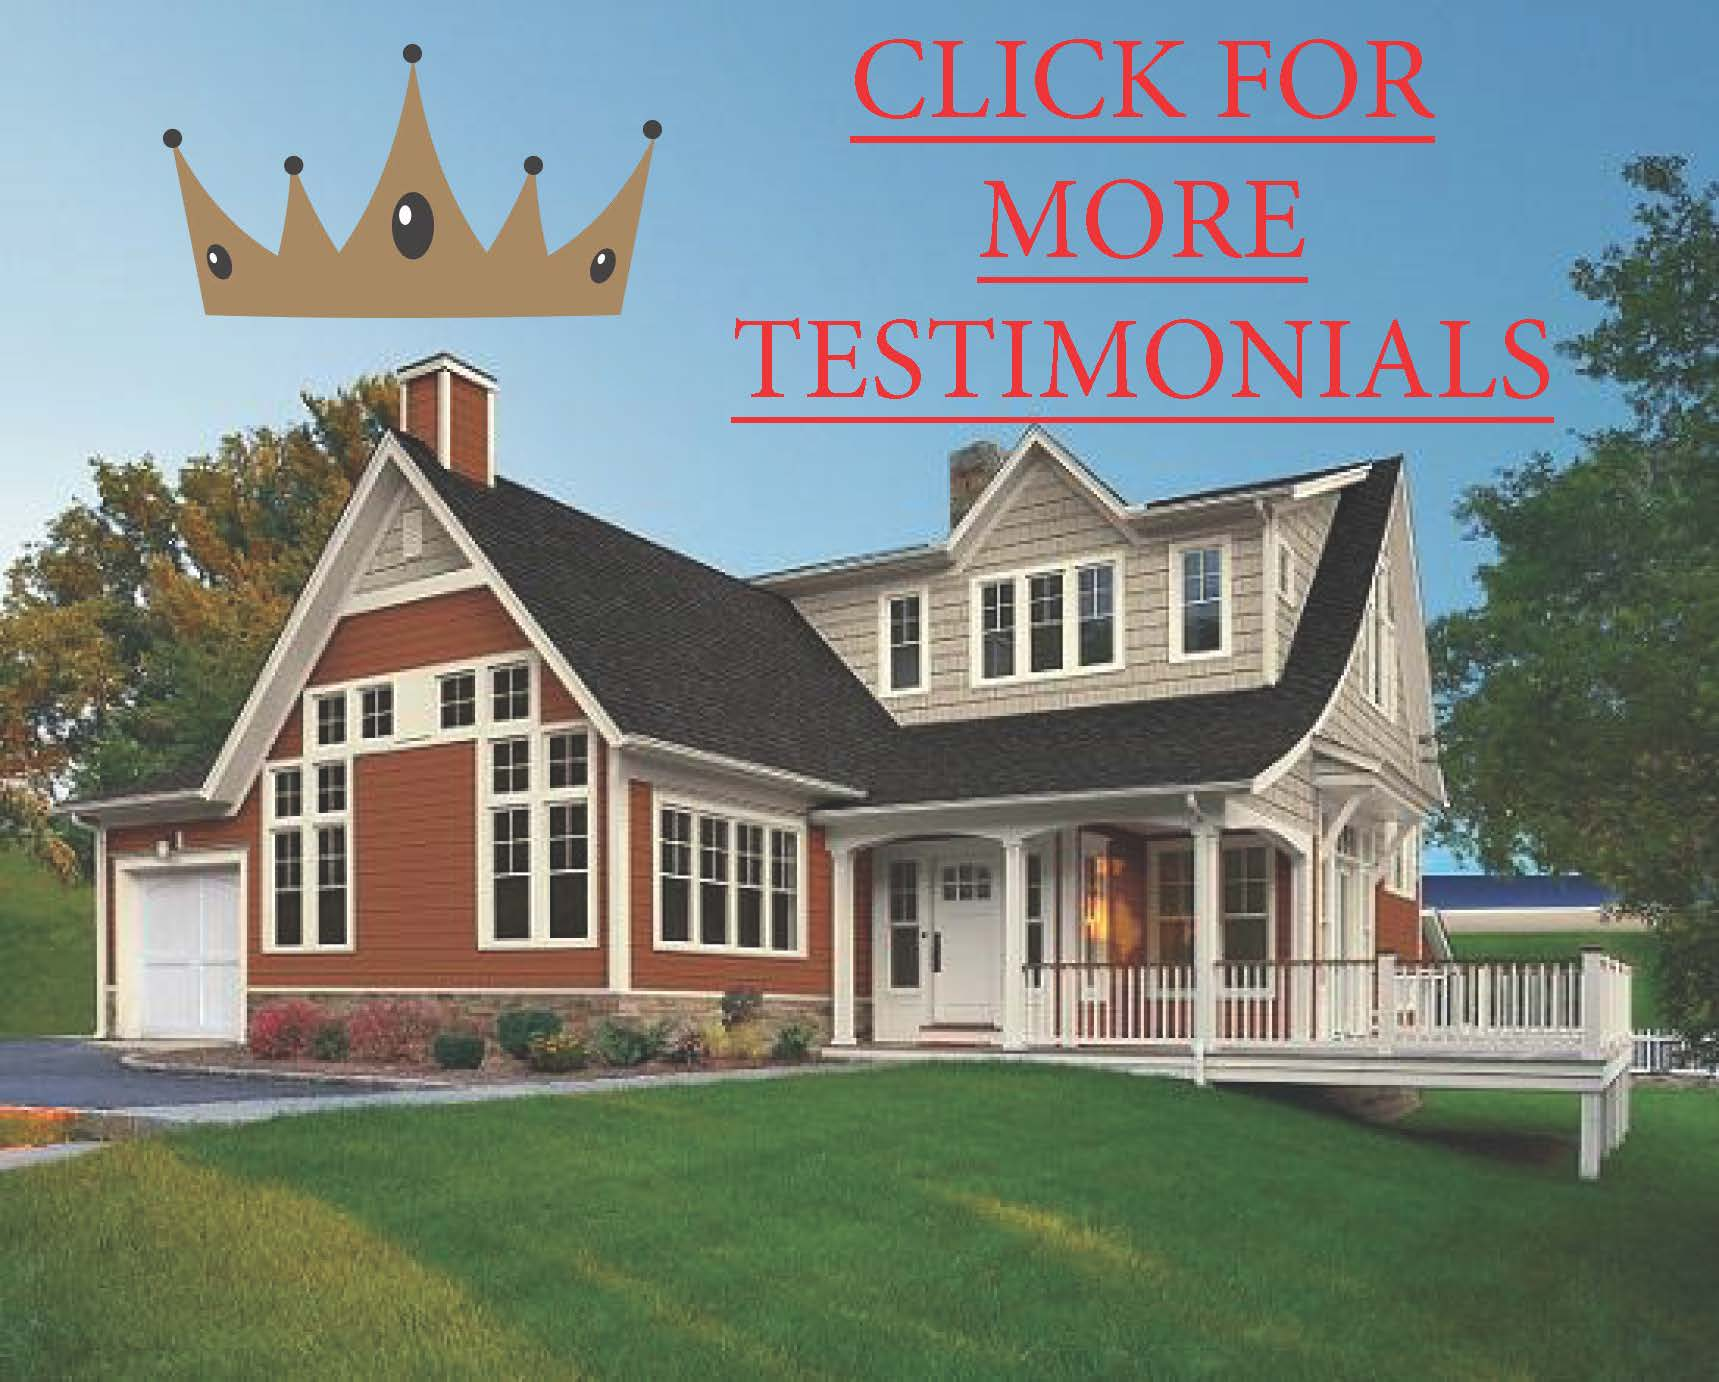 Click to read testimonials from satisfied clients of King Quality Construction.